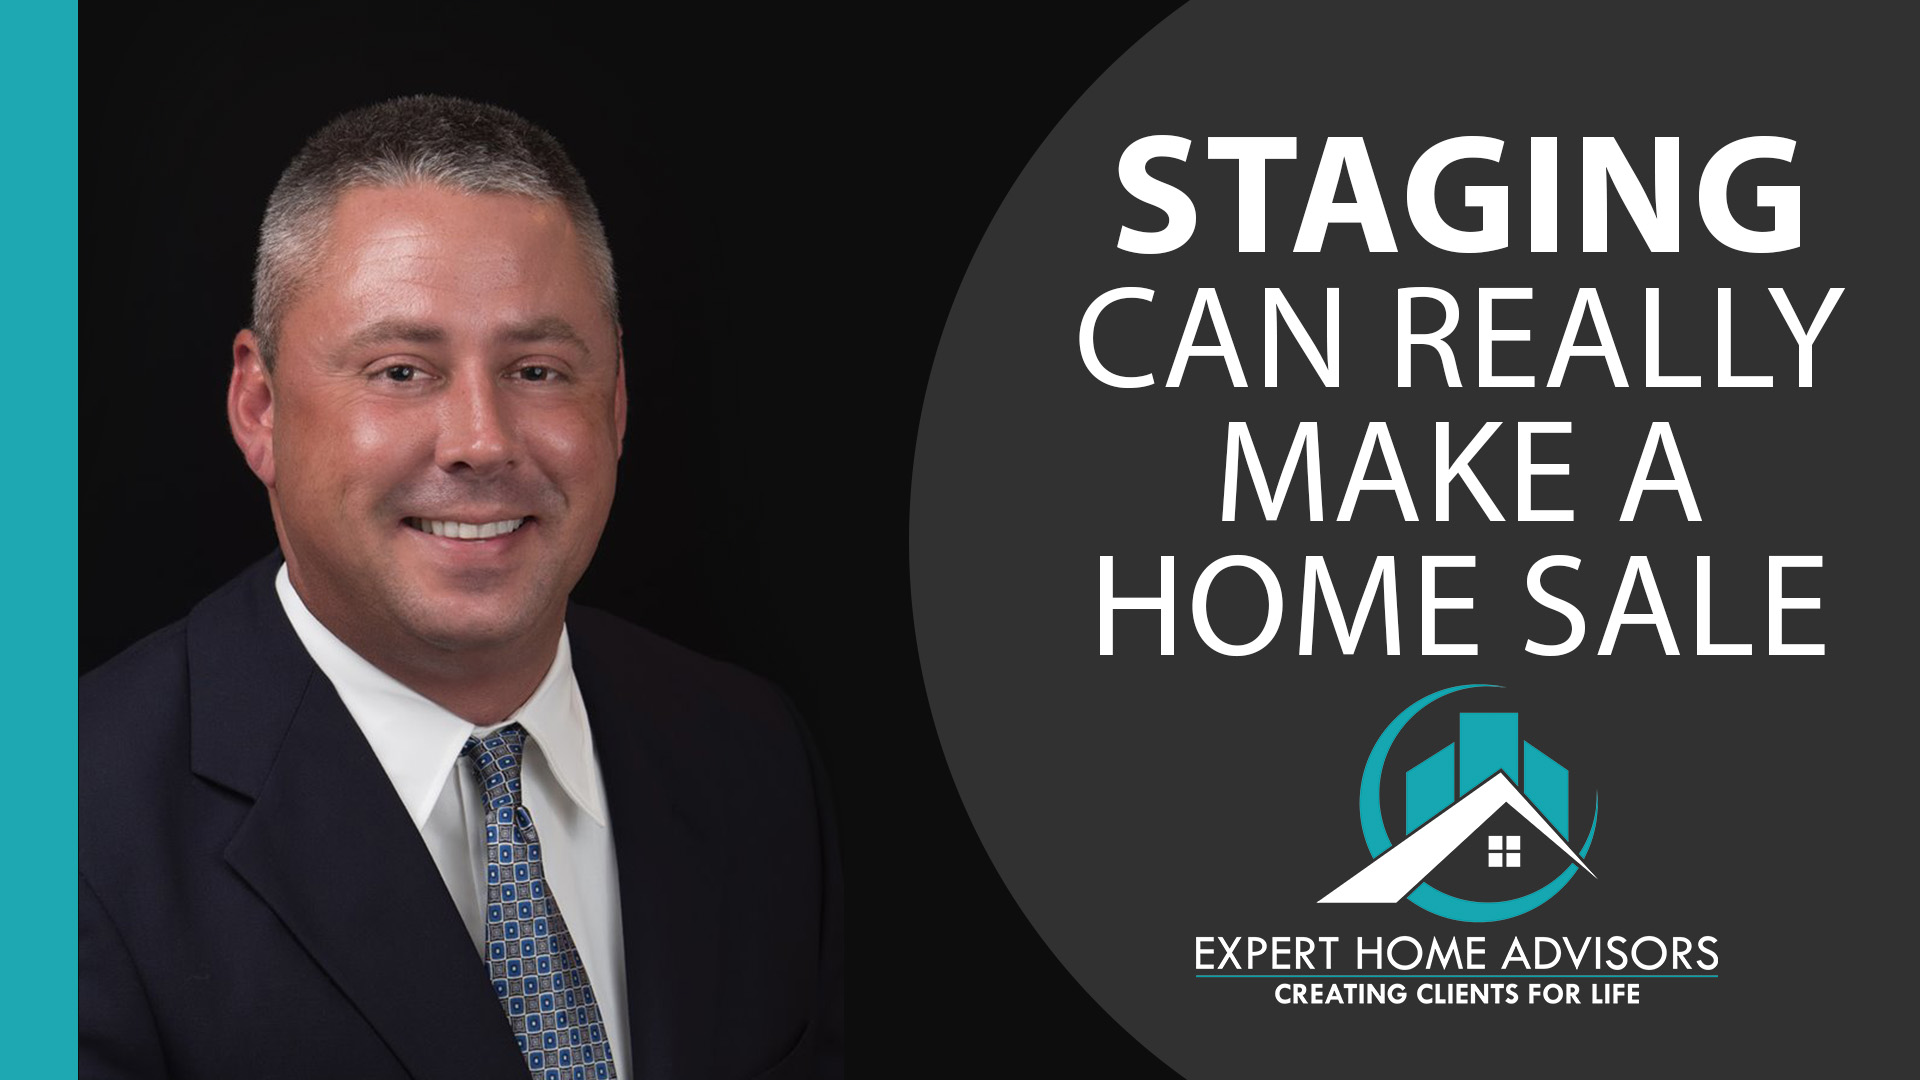 Home Sellers: Land That First Impression by Staging